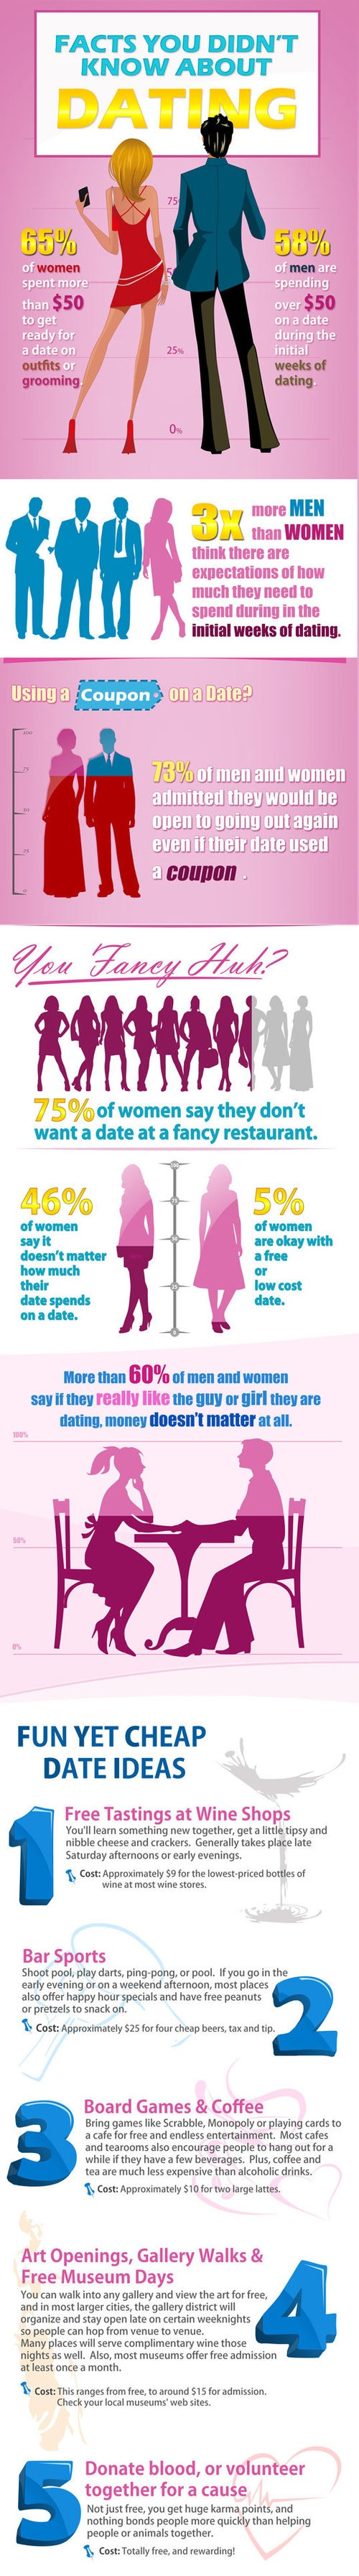 dating # infographic